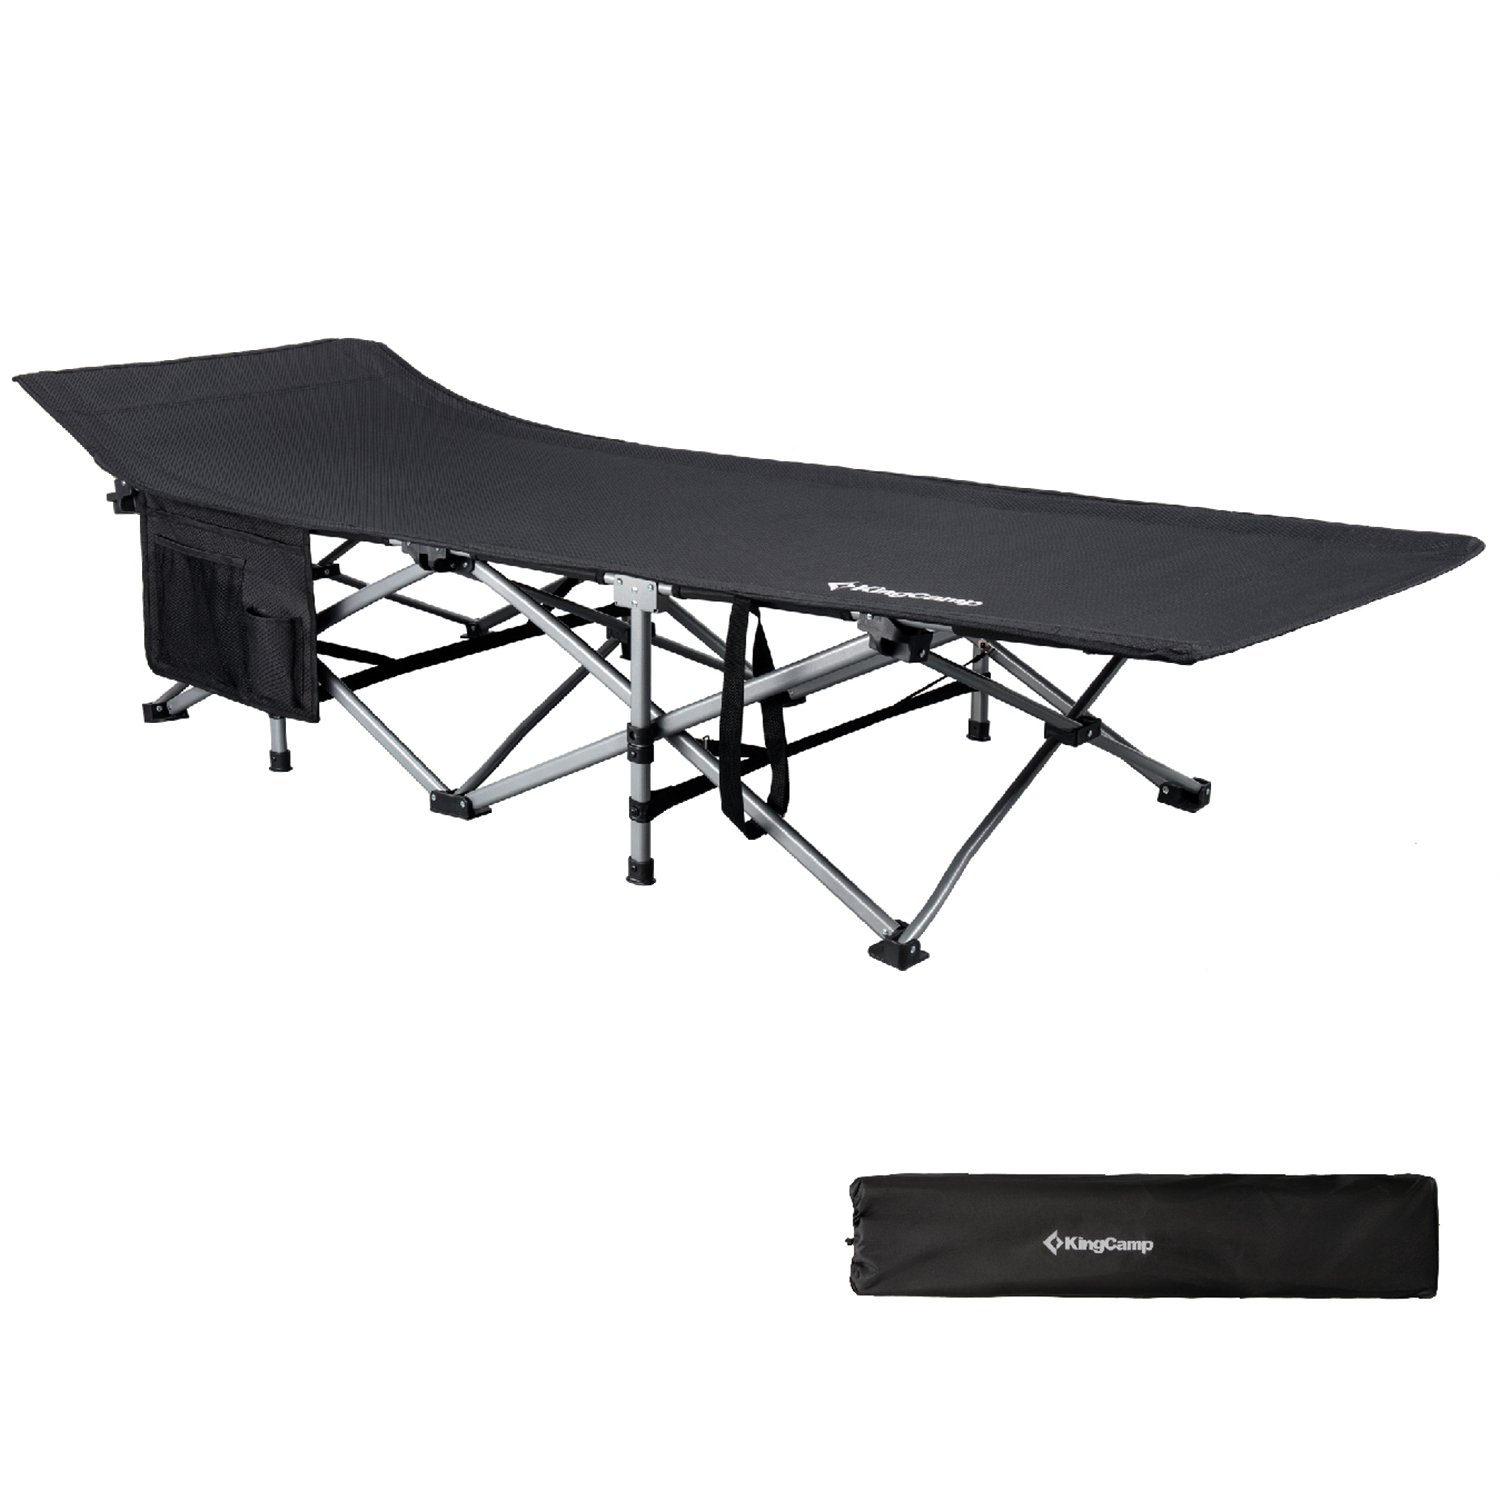 KingCamp Camping Cot XL Oversized Heavy Duty Folding Bed Aluminum Frame with Washable 1200D Jacquard Oxford Fabric, Support 440 lbs, Carry Bag Included, 82 x 29.5 x 15 inches by KingCamp